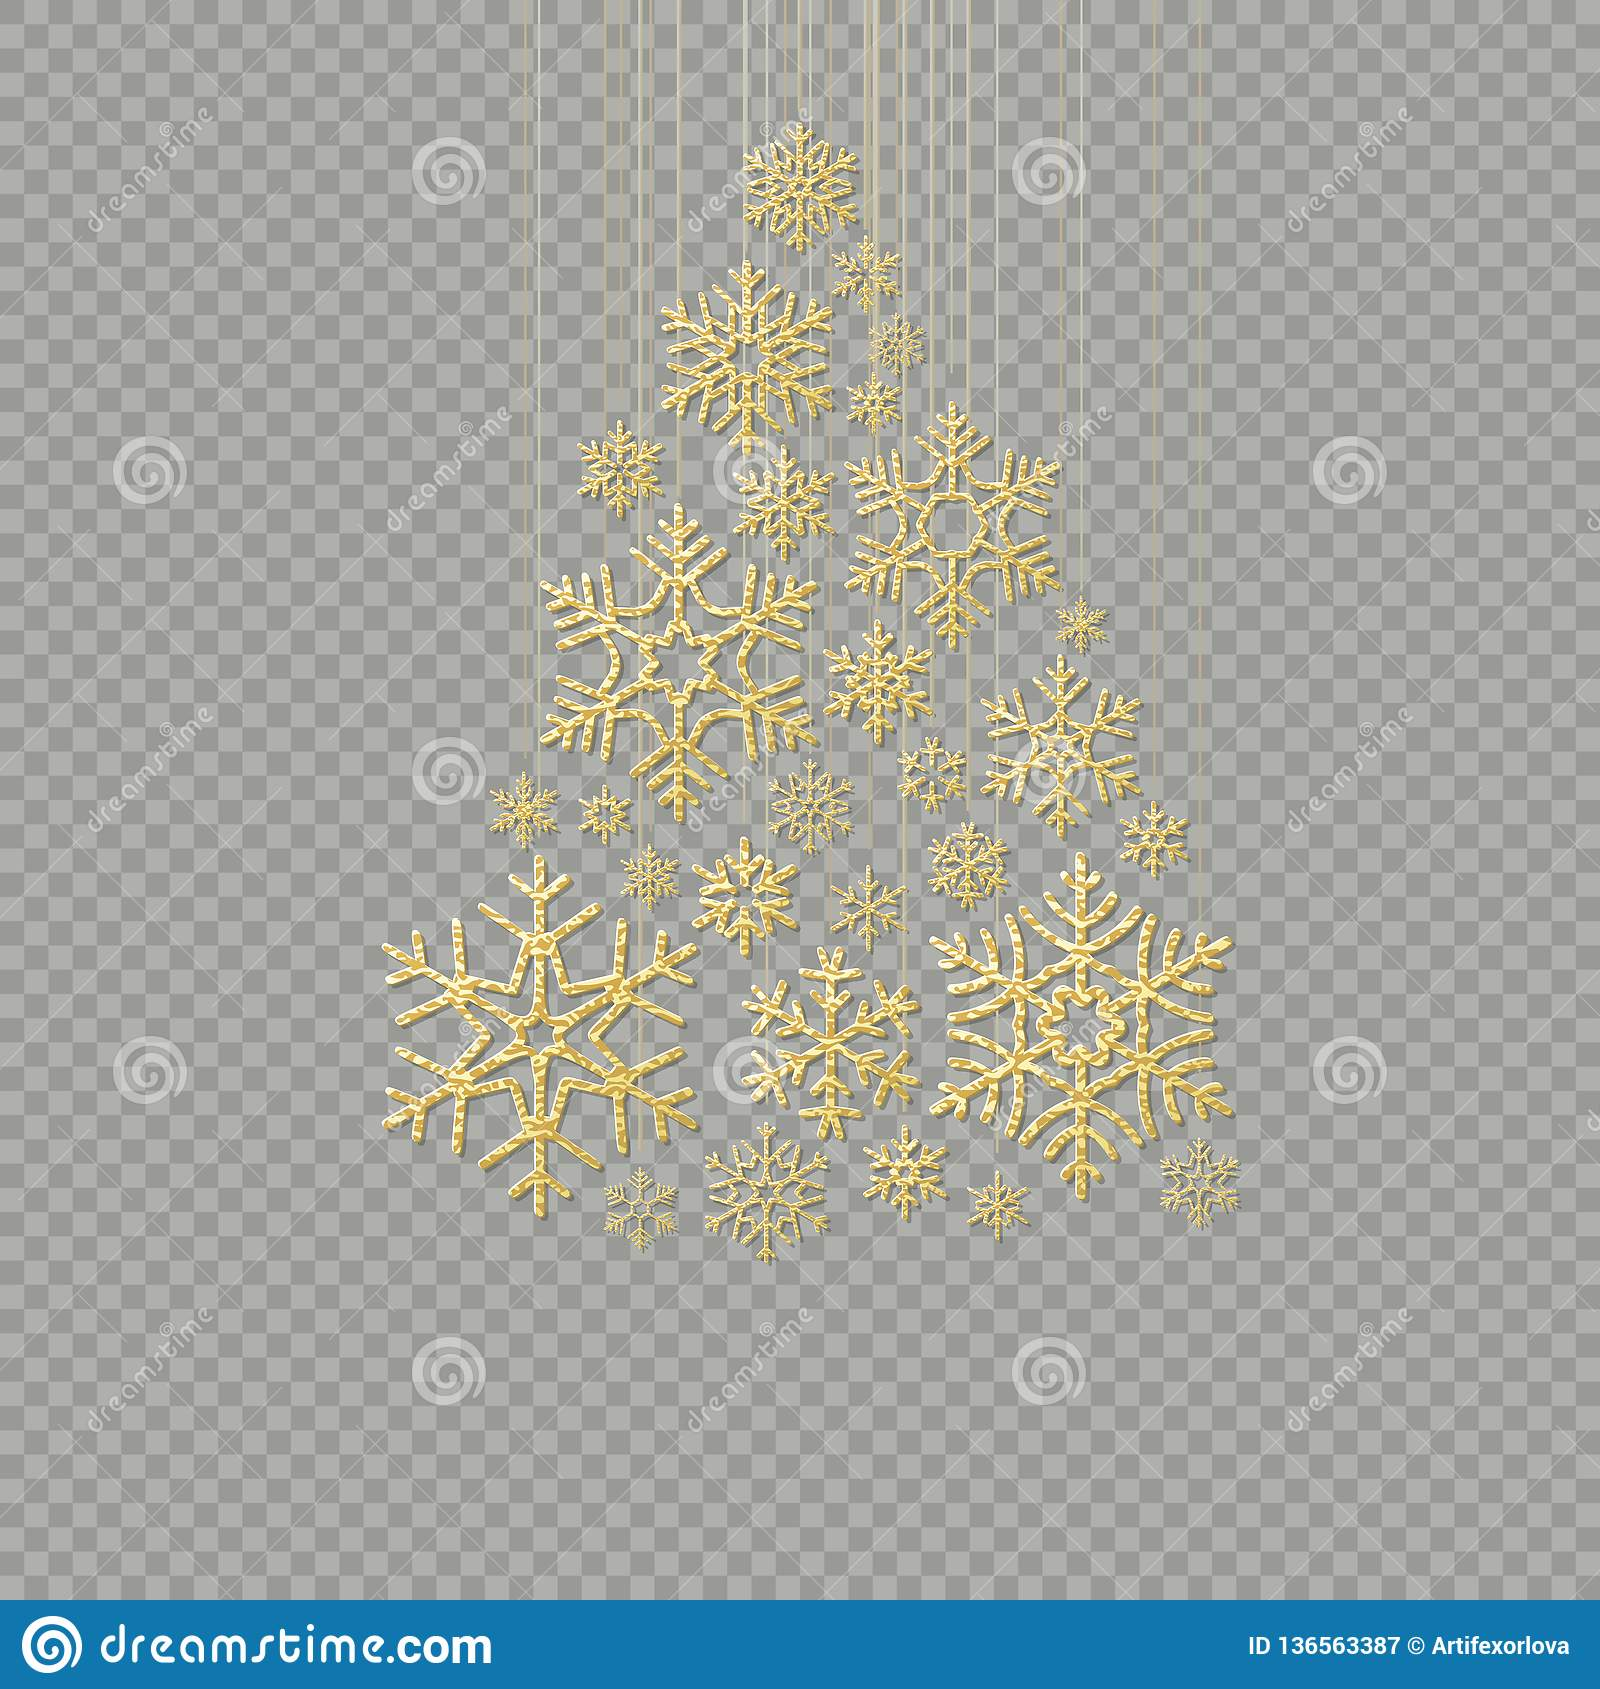 Happy New Year Transparent Background 27